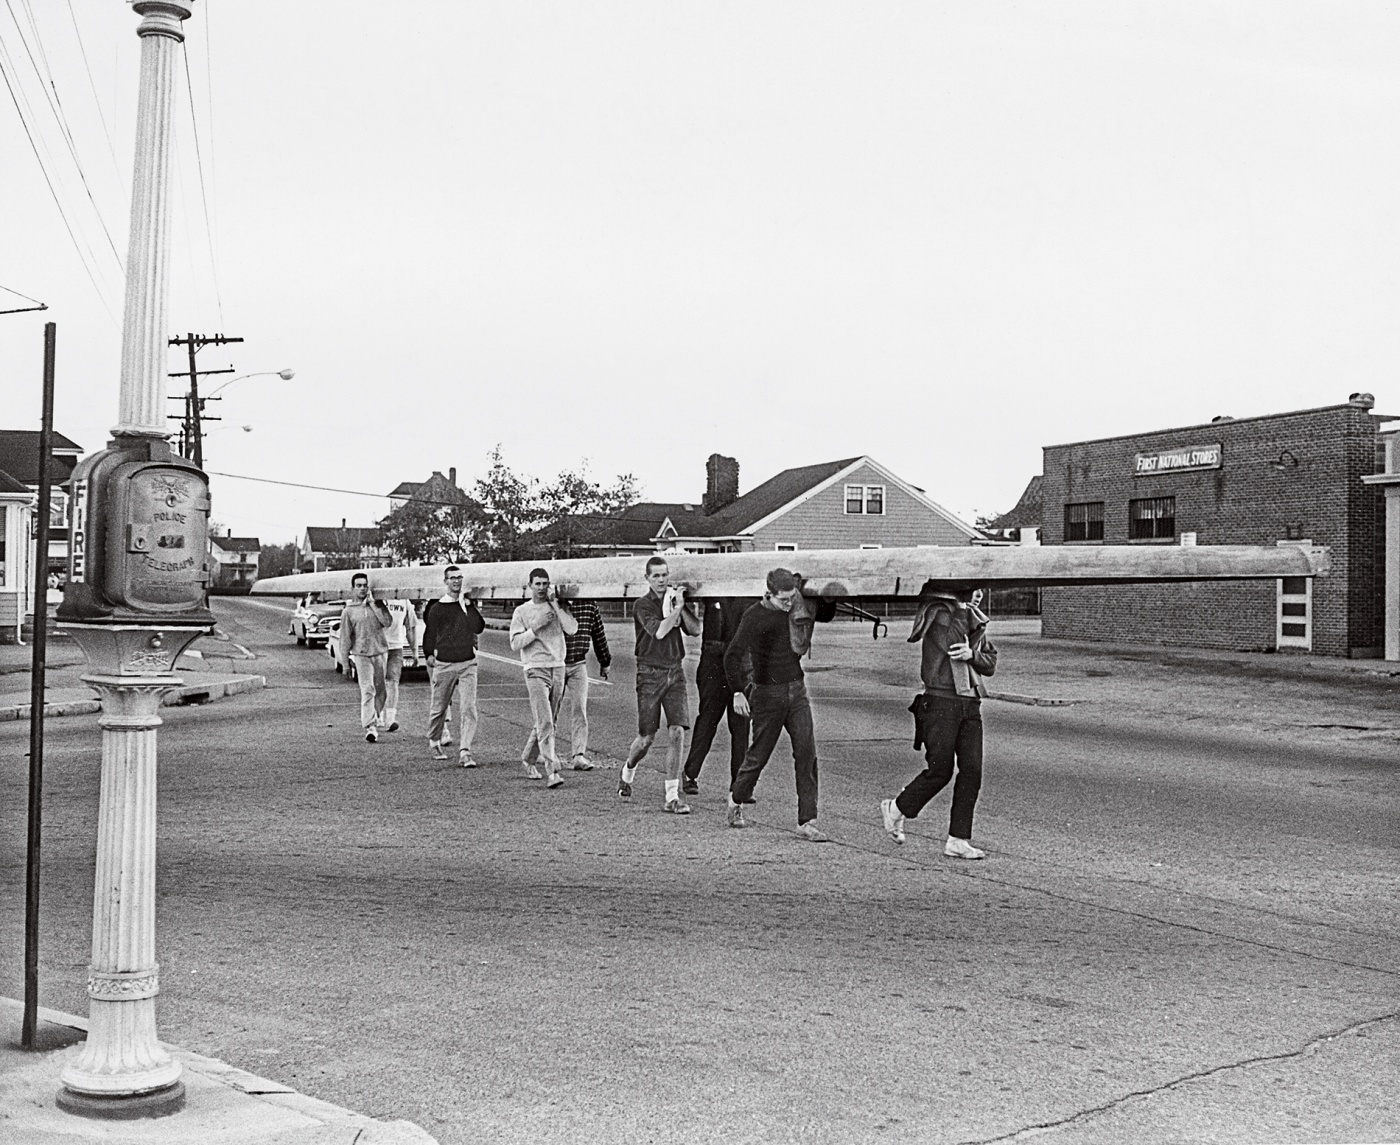 1960 crew carrying shell on street